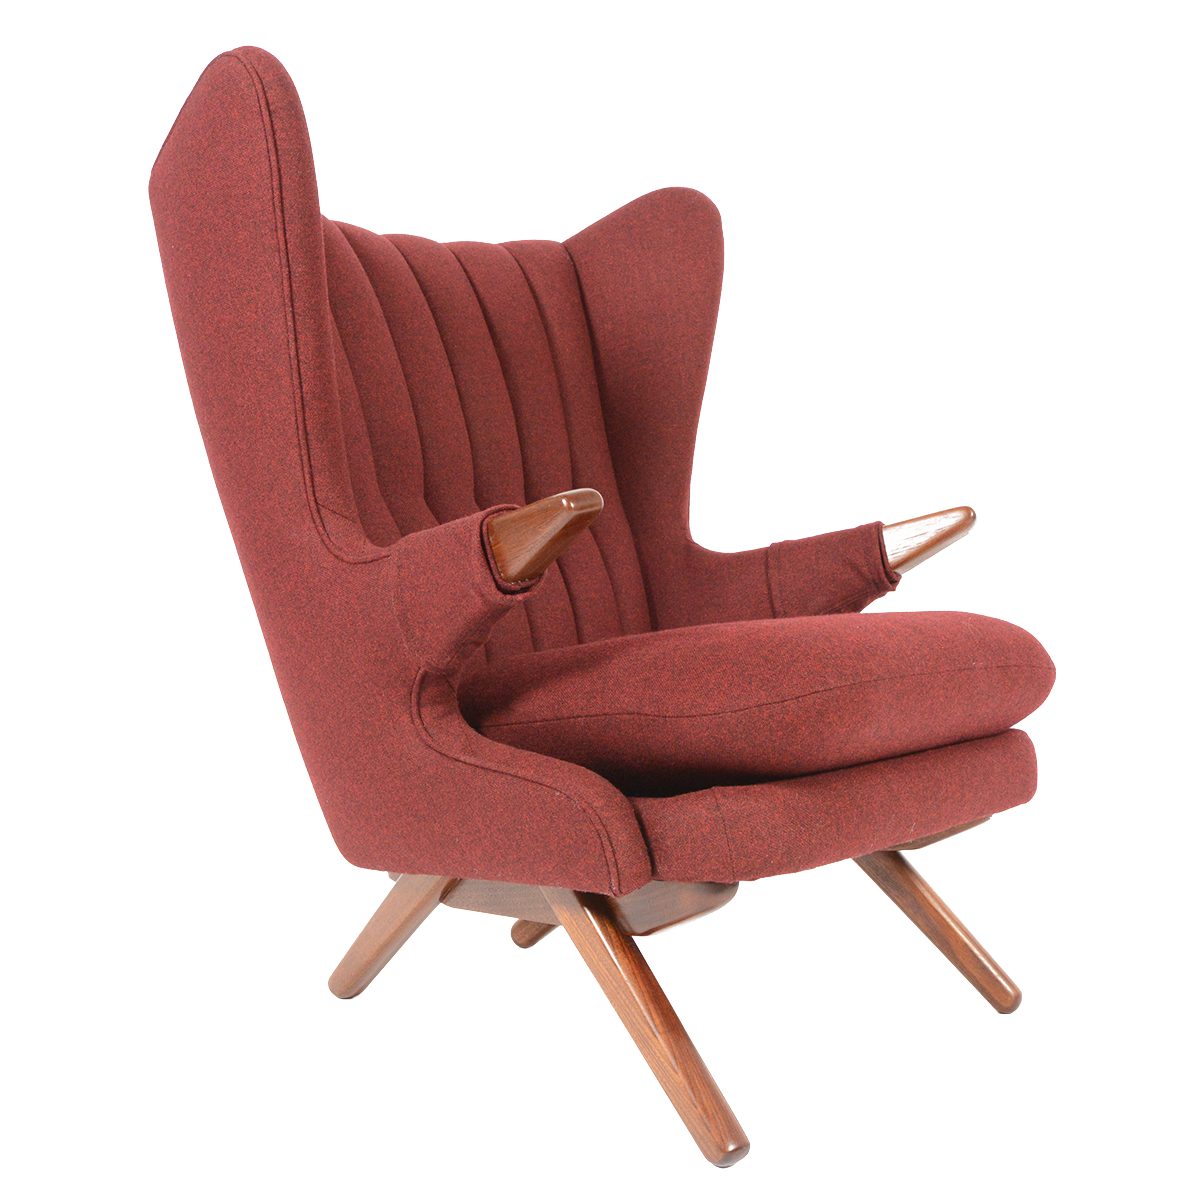 Svend skipper model 91 burgundy lounge chair chairish for Burgundy chaise lounge